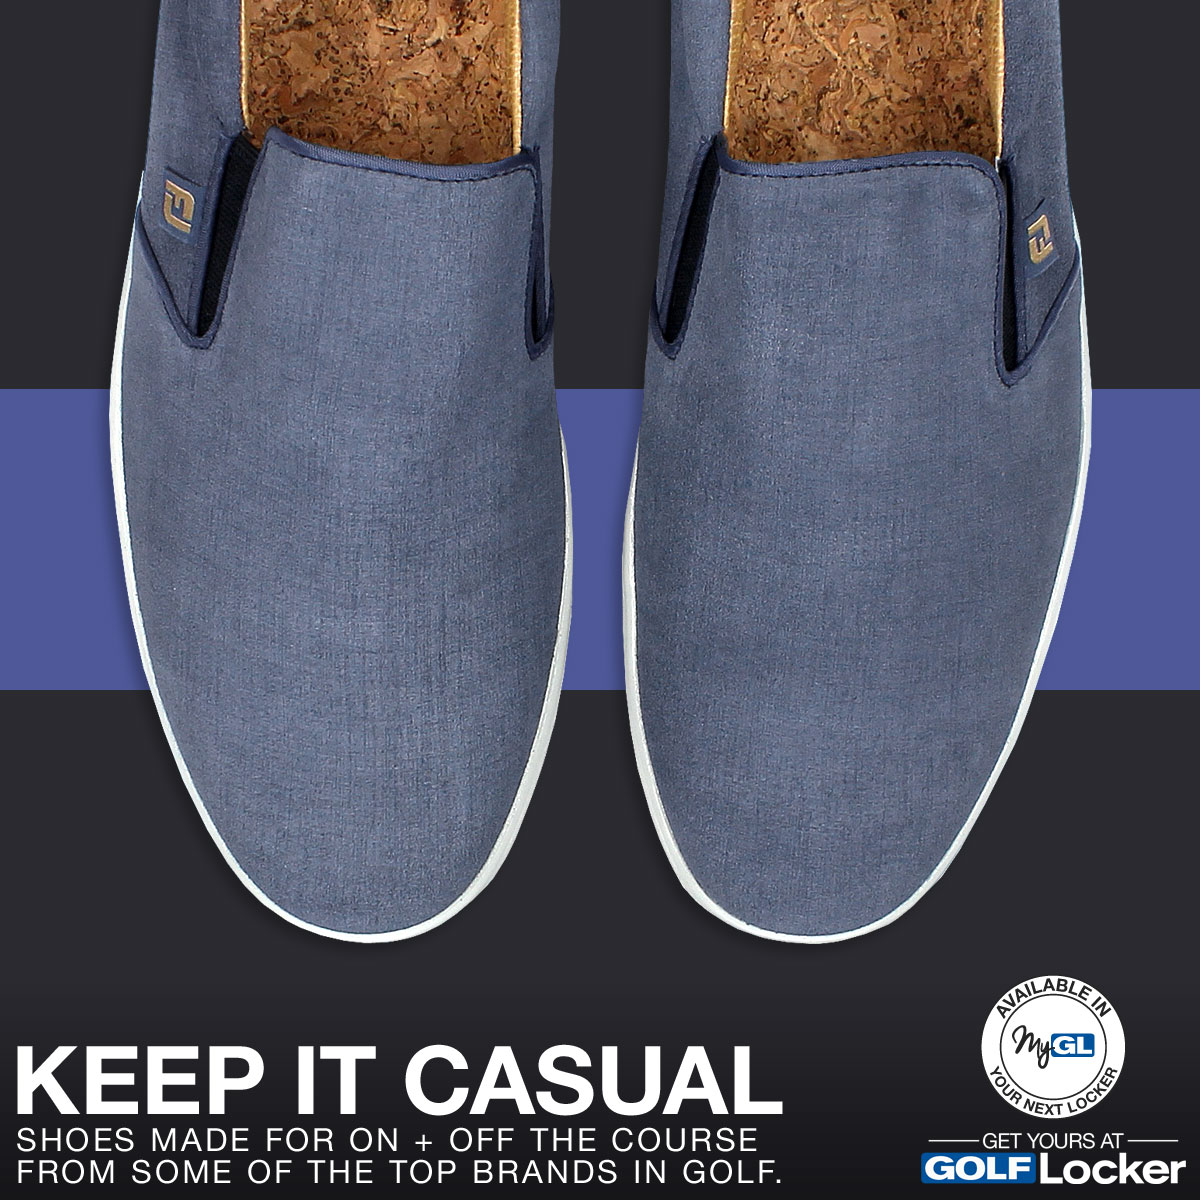 Keep it casual. Shop casual shoes made for on and off the course.